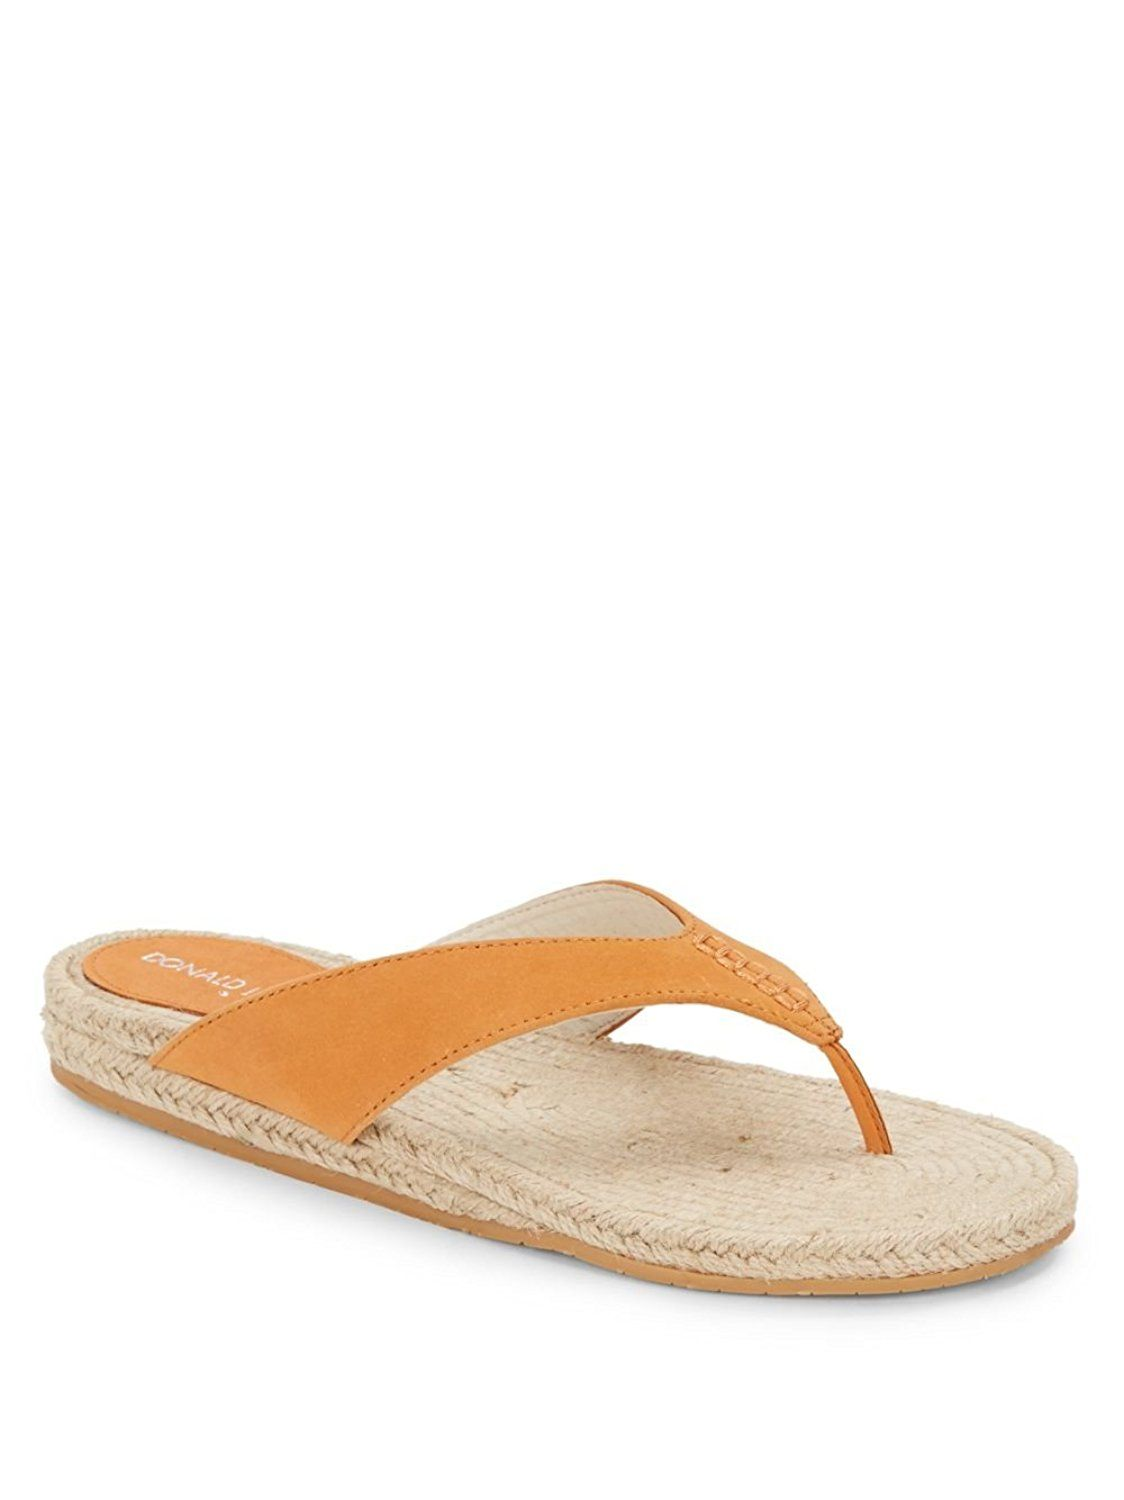 get authentic cheap price Donald J Pliner Suede Thong Sandals outlet lowest price fast delivery cheap online buy cheap official site free shipping big discount XCFOwL